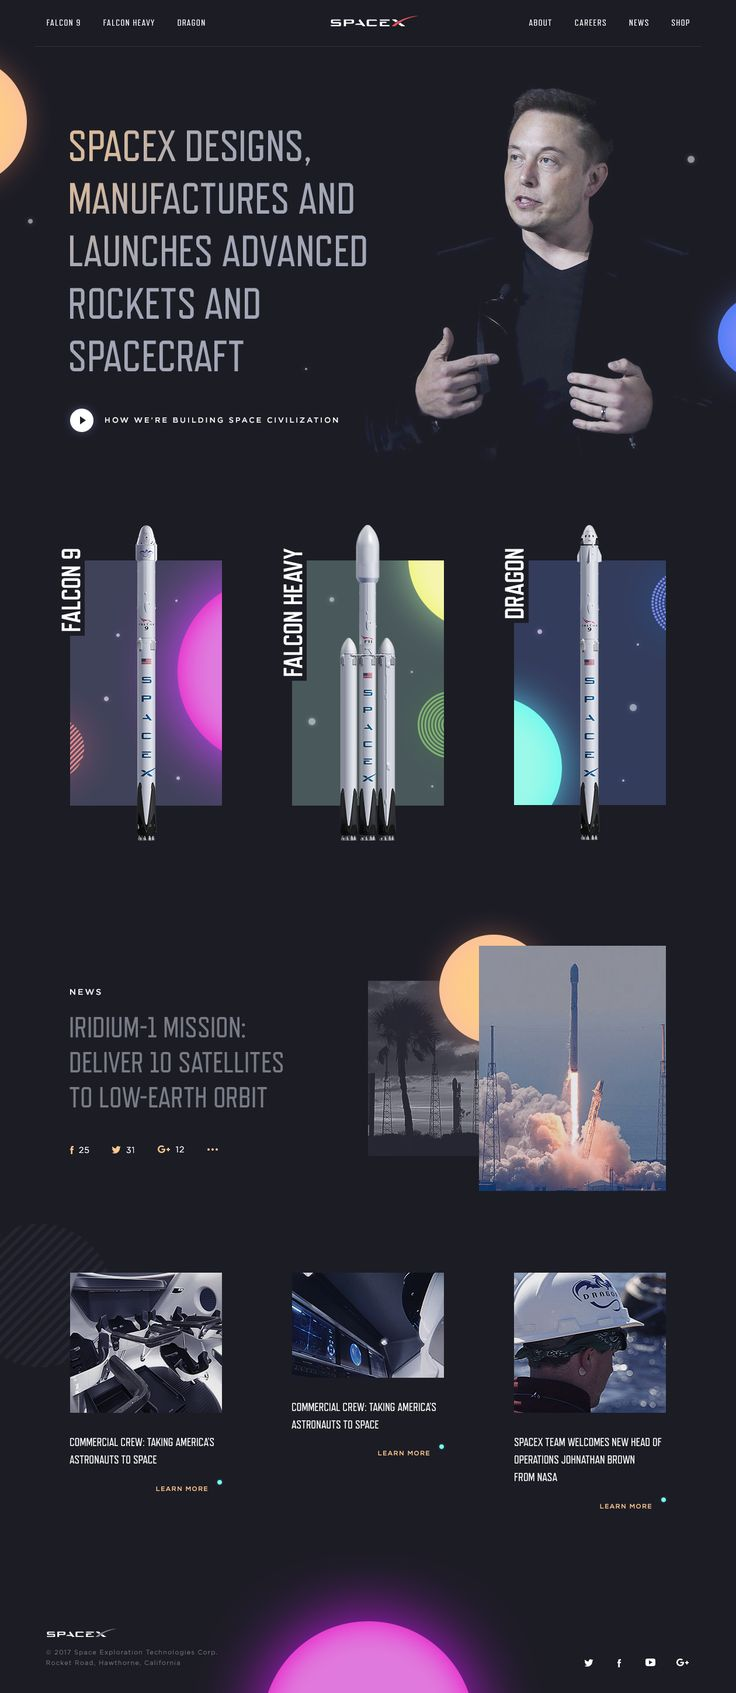 Spacex page